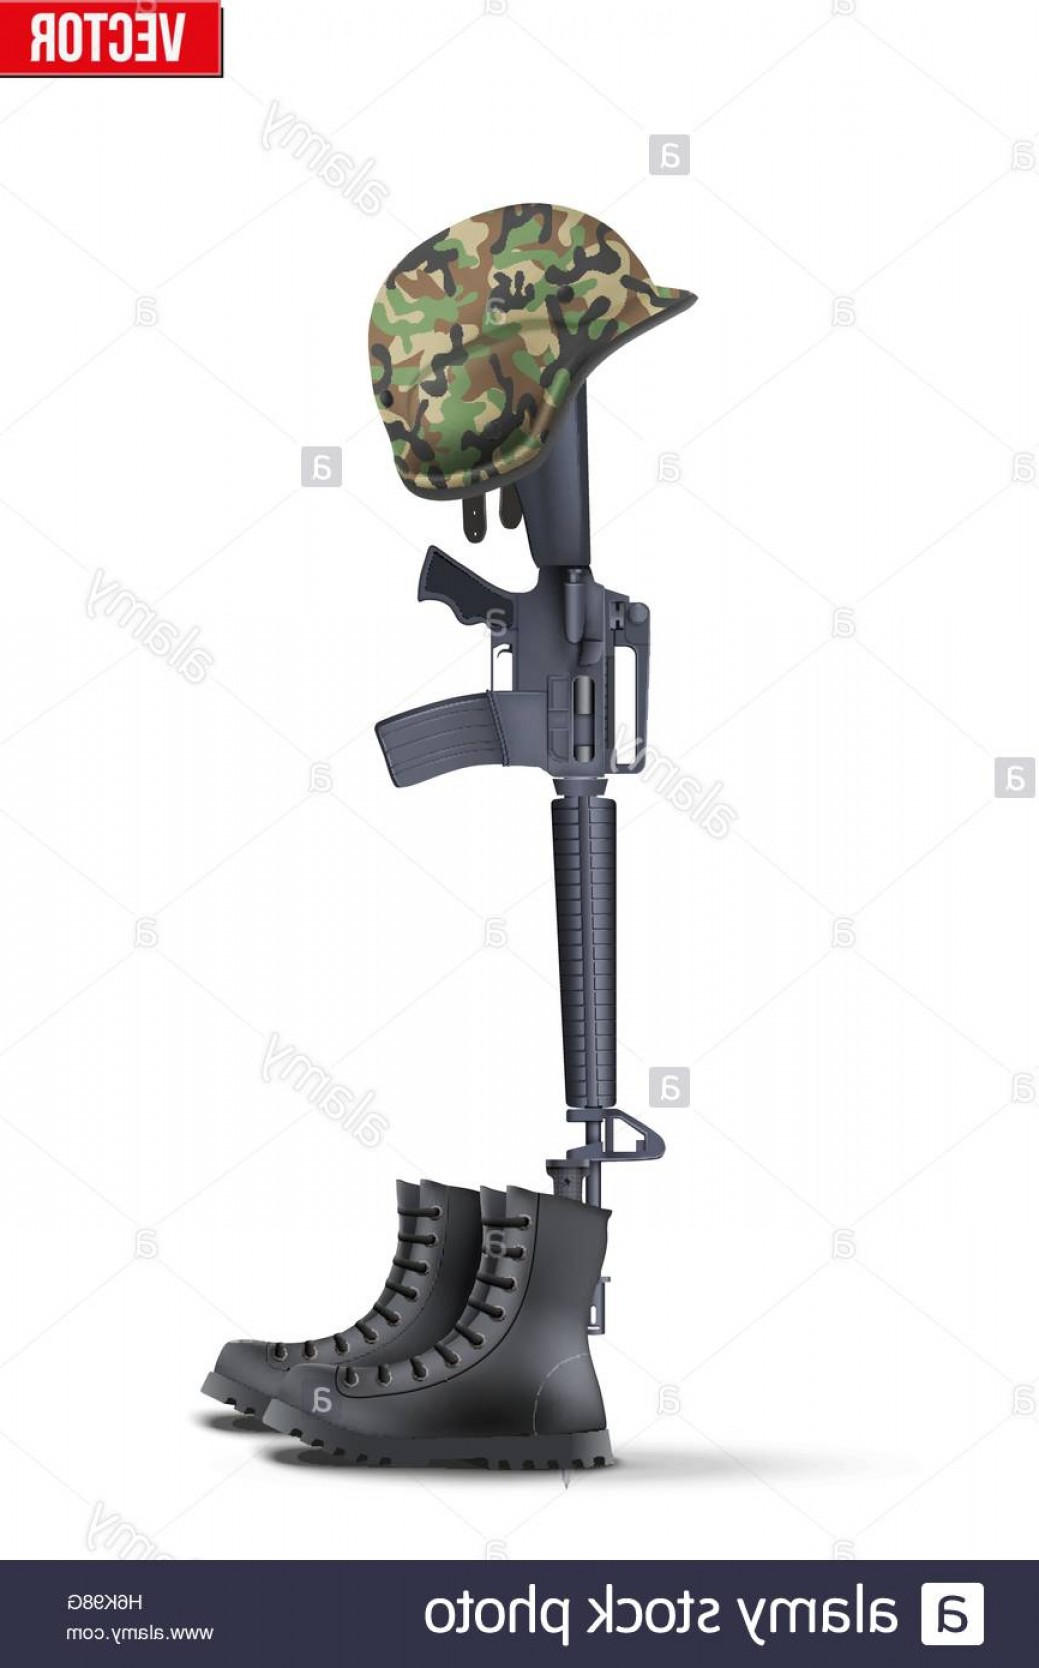 Vector Rifle And Boots: Stock Photo Memorial Battlefield Cross The Symbol Of A Fallen Us Soldier Modern